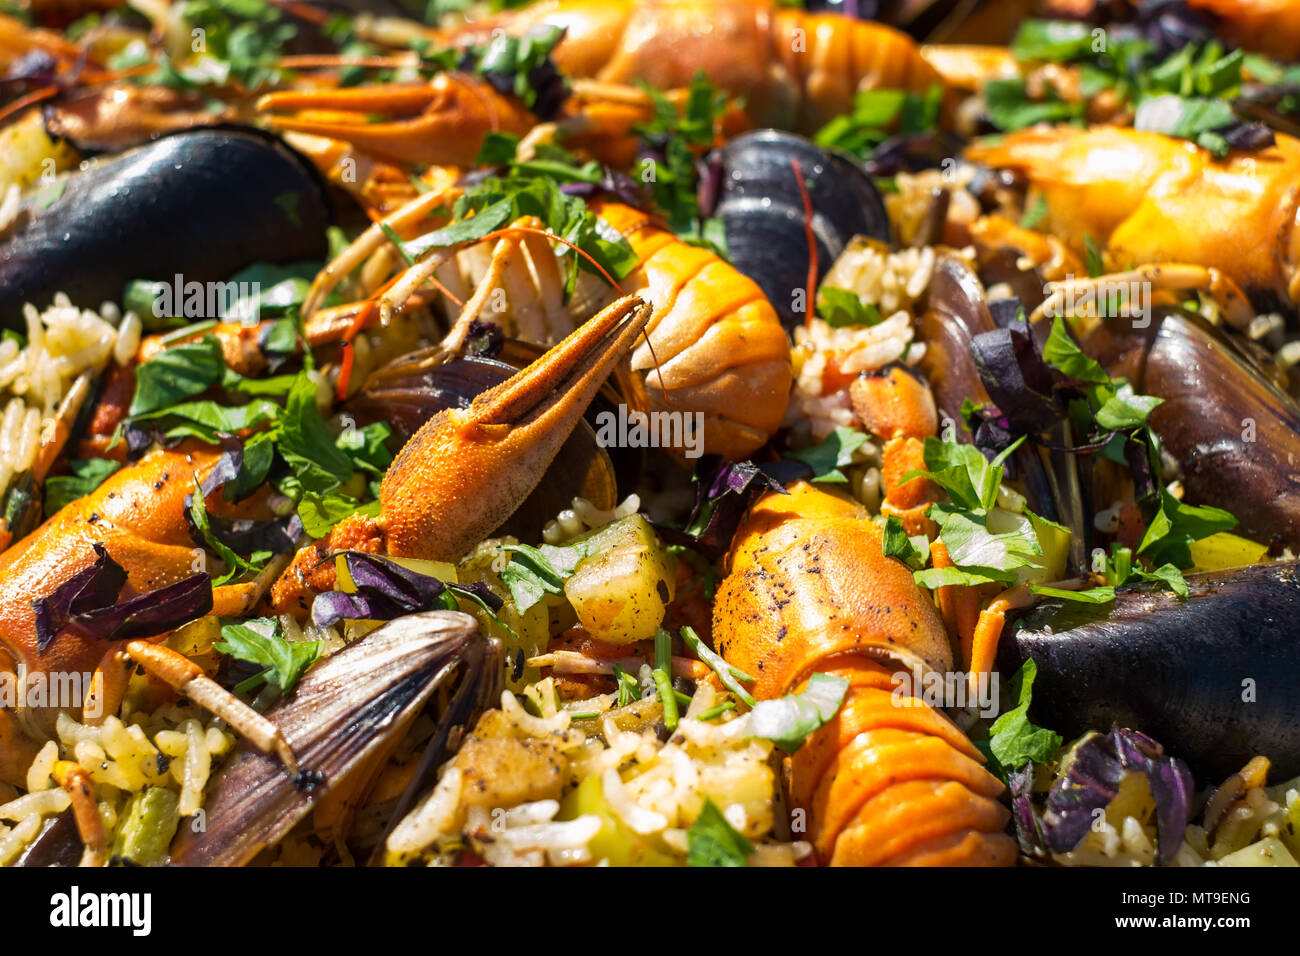 Homemade Spanish Seafood Paella with Prawns Mussels and crayfish - Stock Image